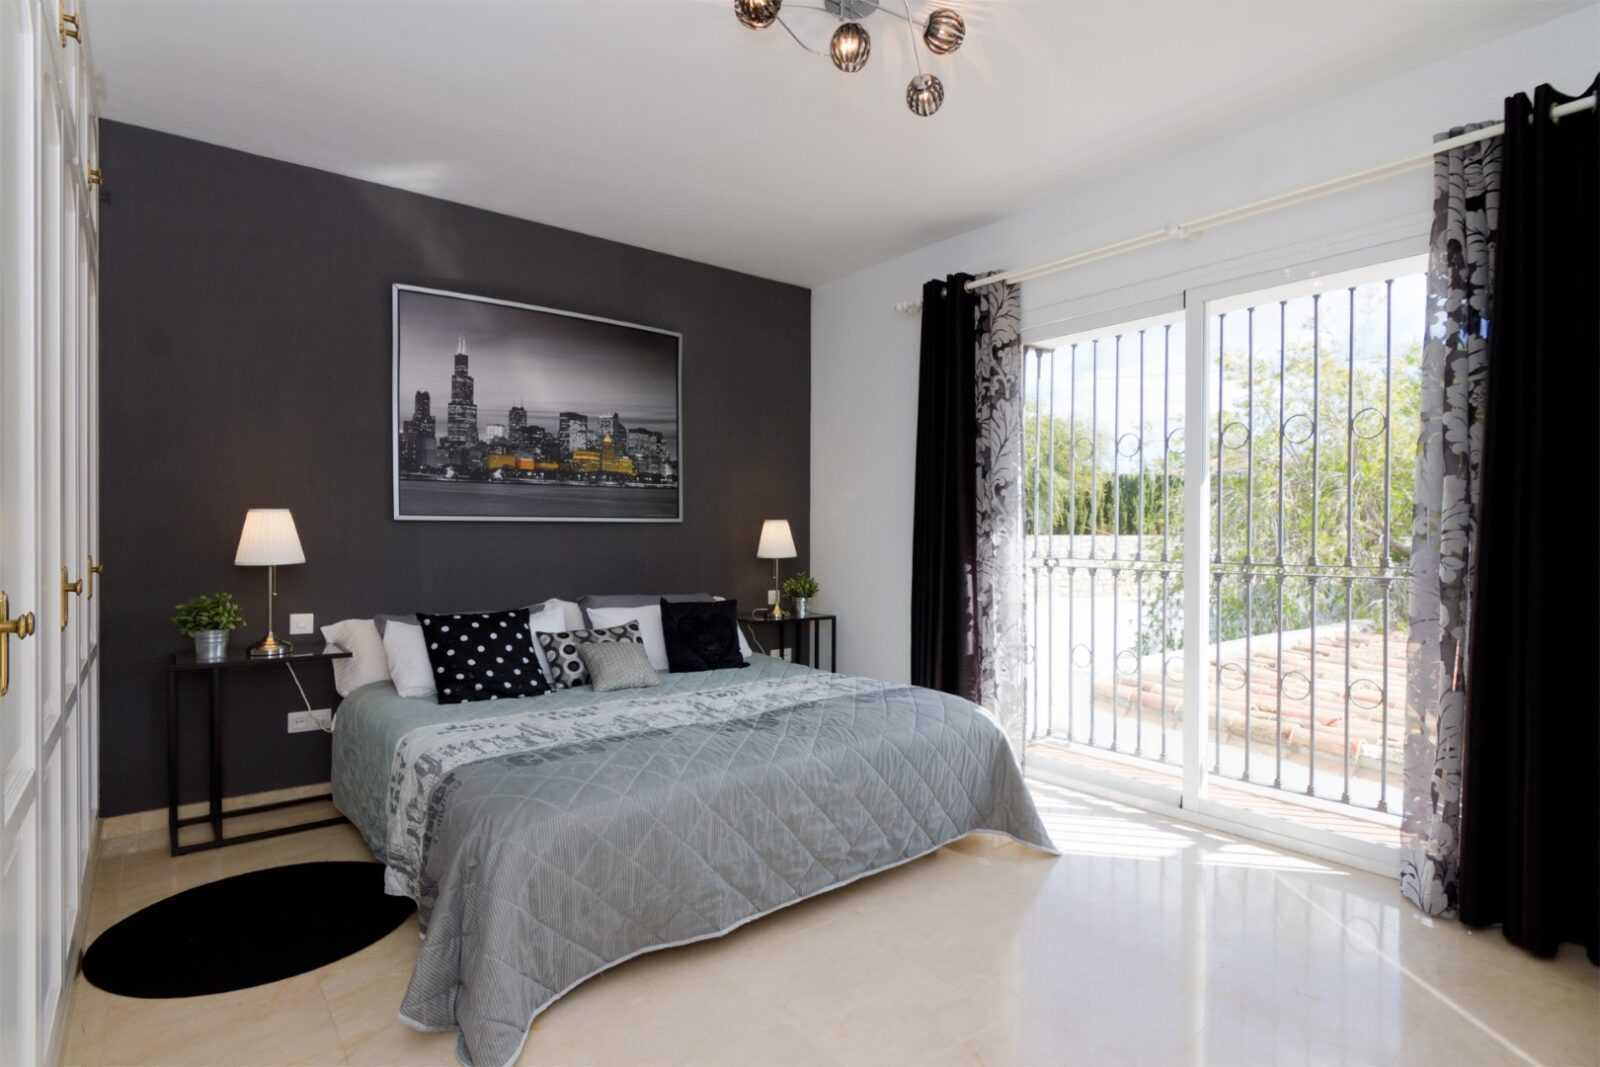 IMG 3654 as Smart Object 1 Large Virtualport3d luxury Properties in Marbella and Costa del Sol